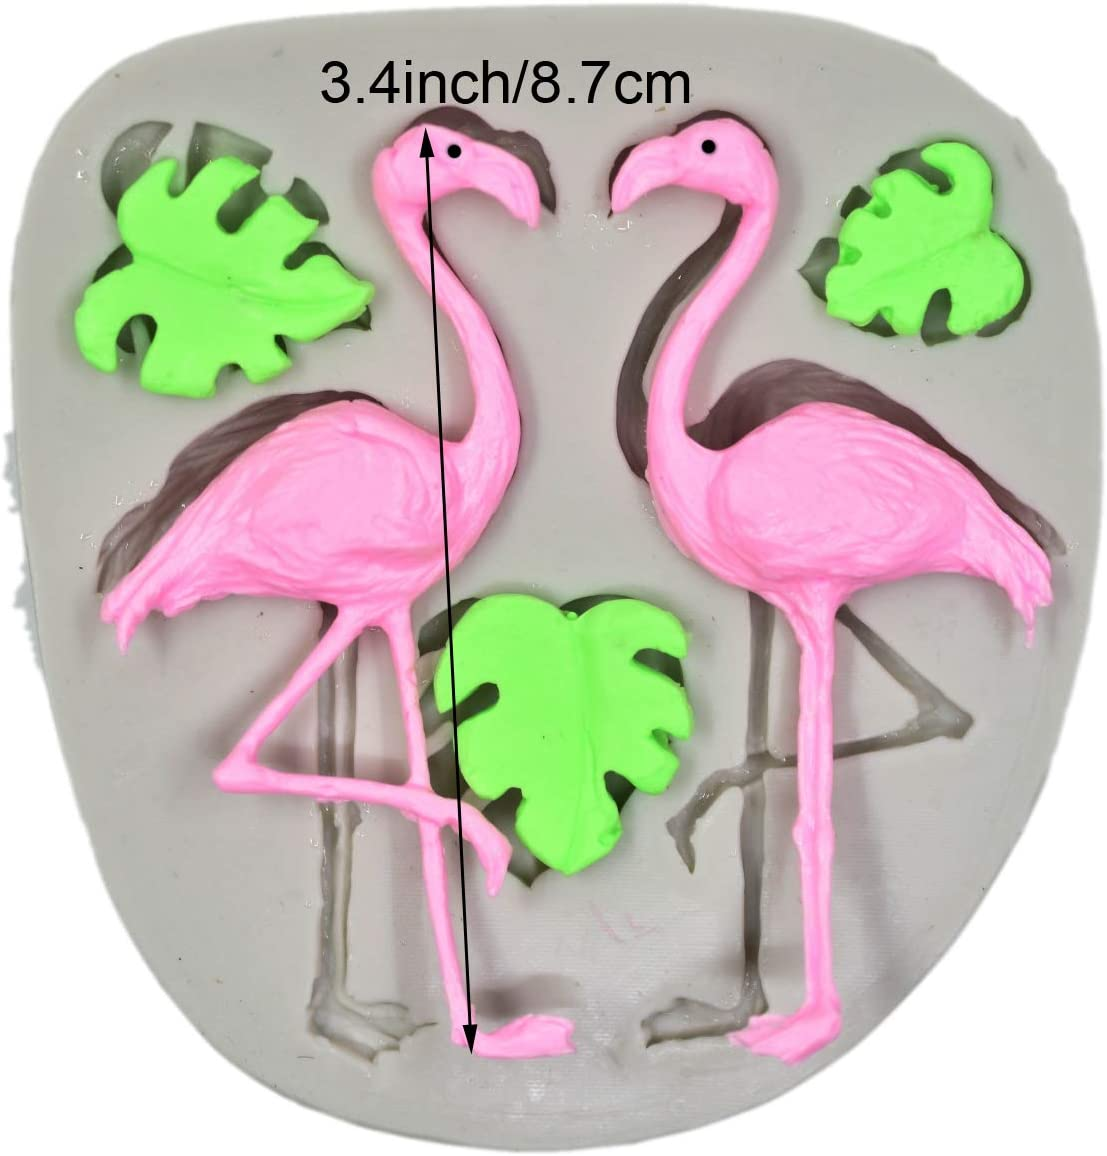 Butter Soap Polymer Clay Crafting Projects Fondant Flamingo//Turtle Leaf Fondant Silicone Mold for Sugar Paste,Candy Wax Resin